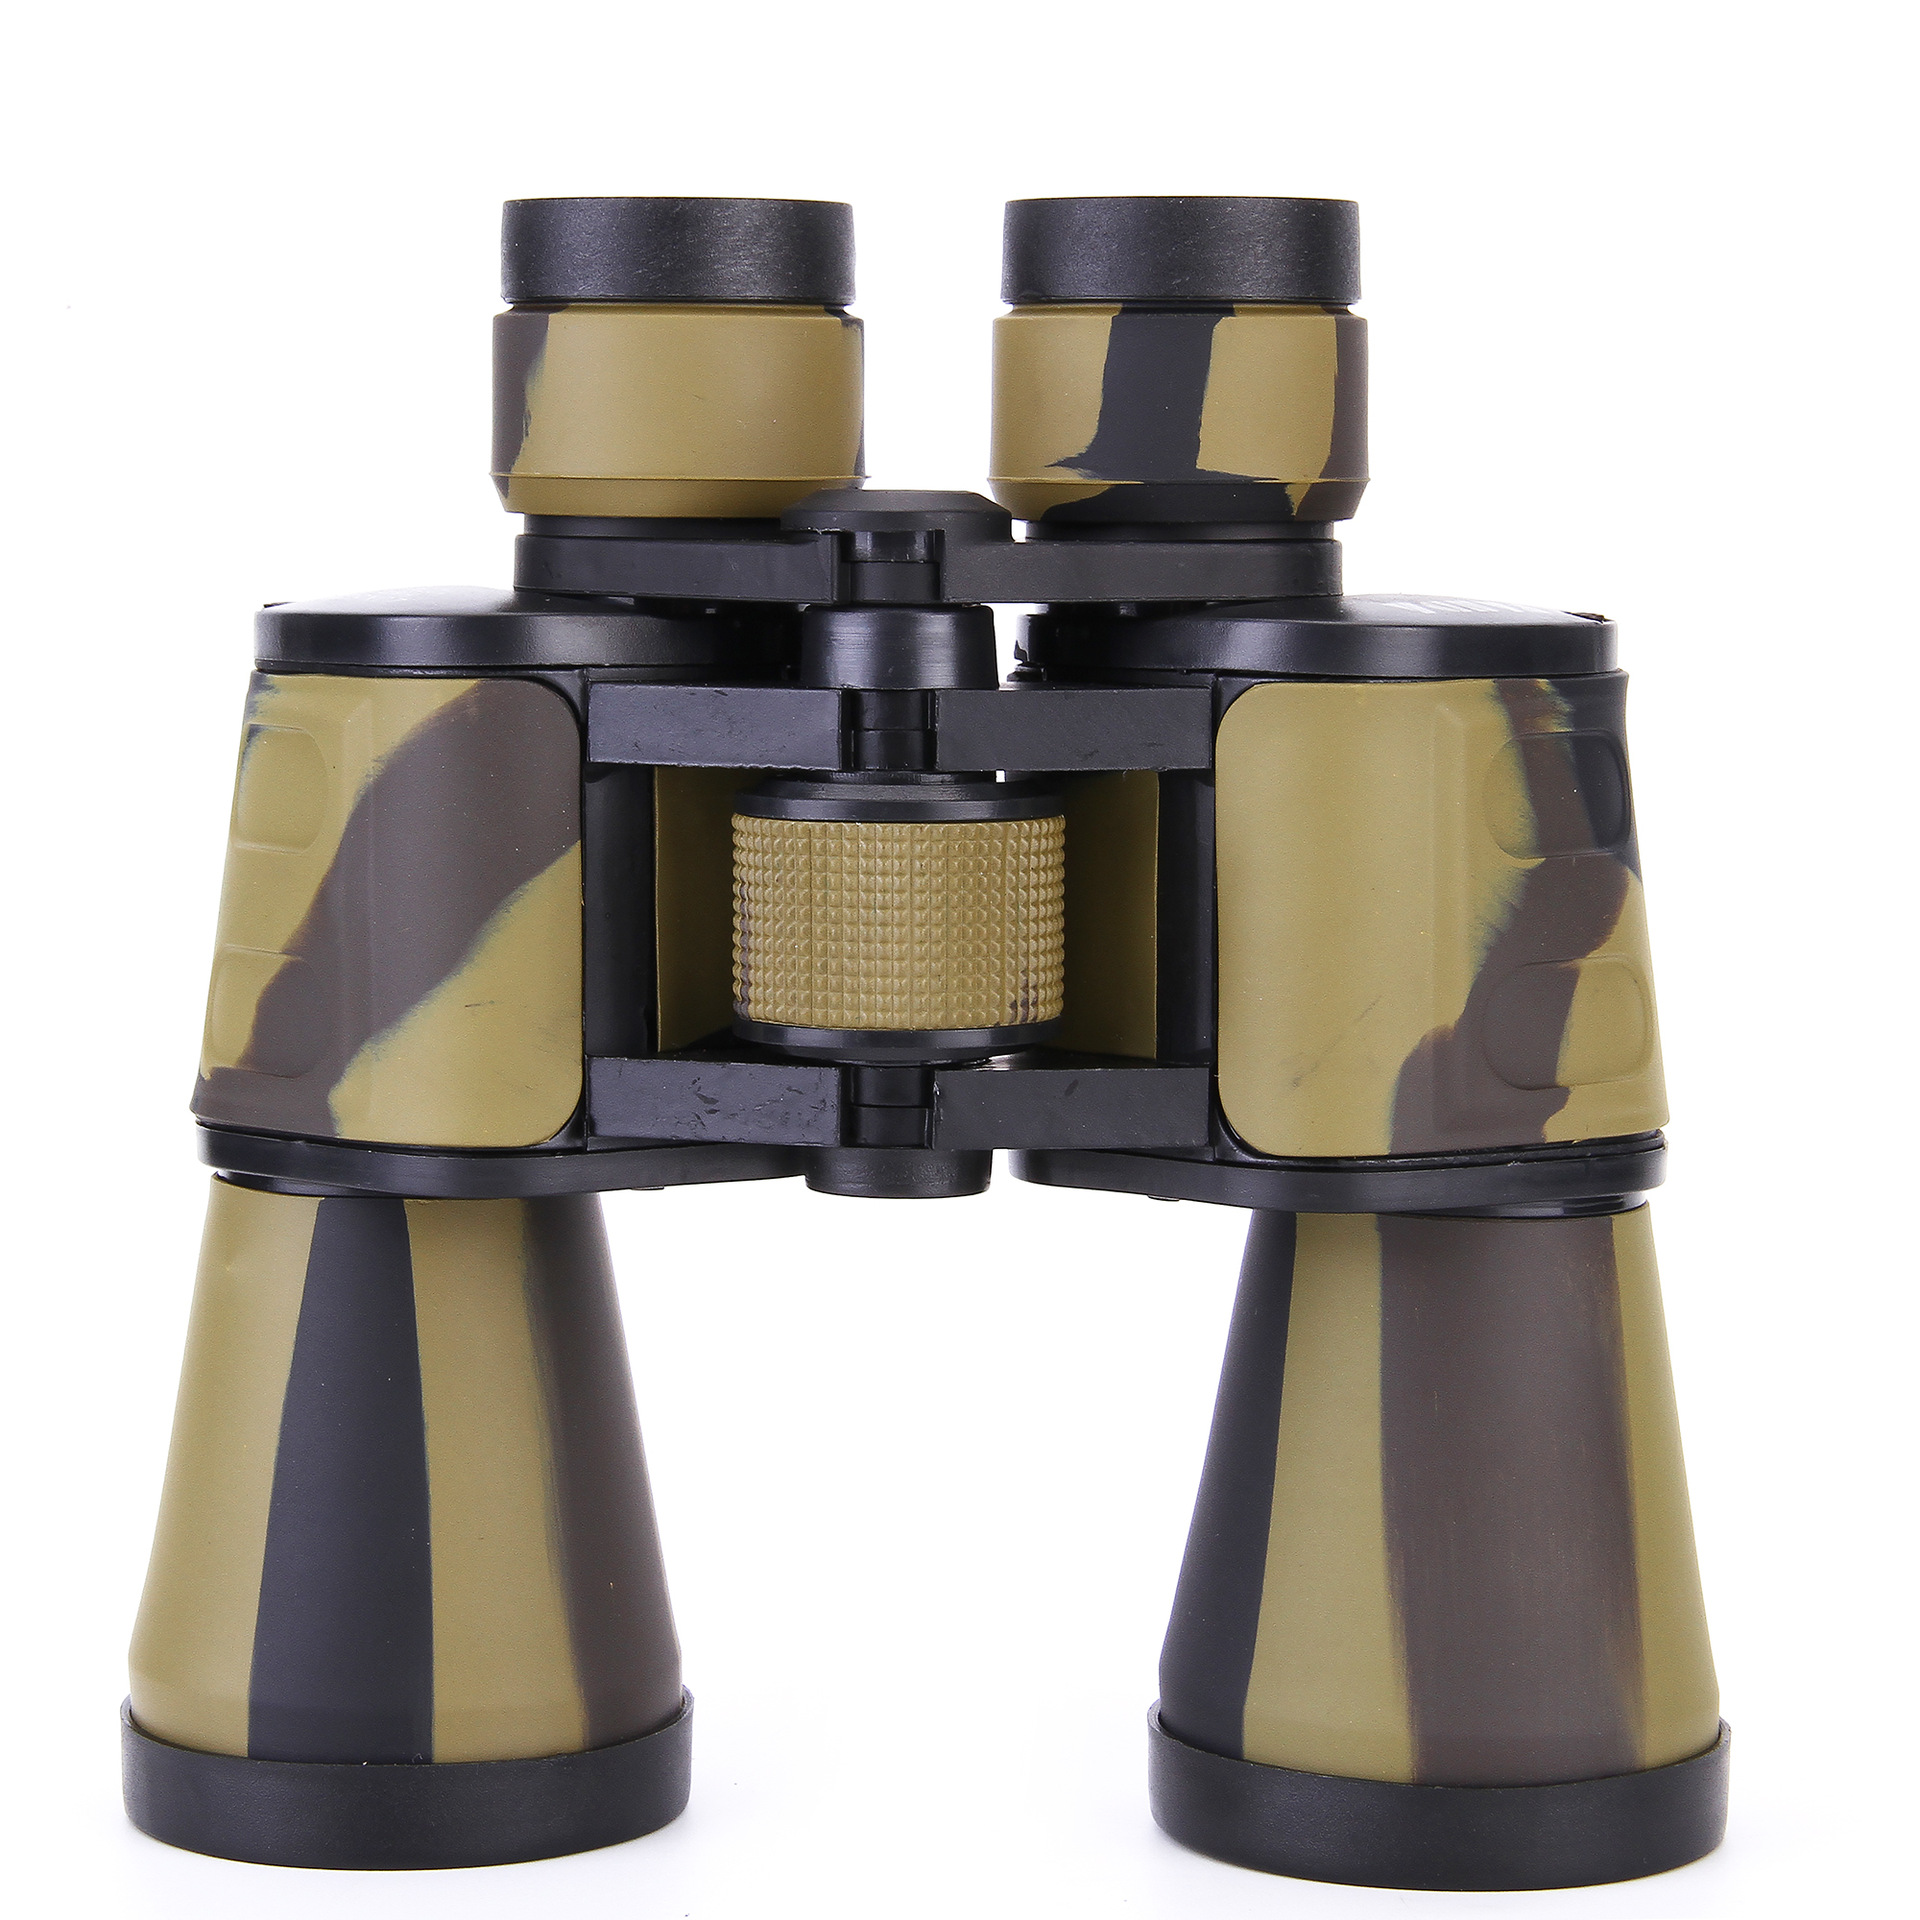 Top Grade High Definition Binocular Telescope Binoculars <font><b>20X50</b></font> travel outdoor hiking telescope high quality <font><b>monocular</b></font> telescope image